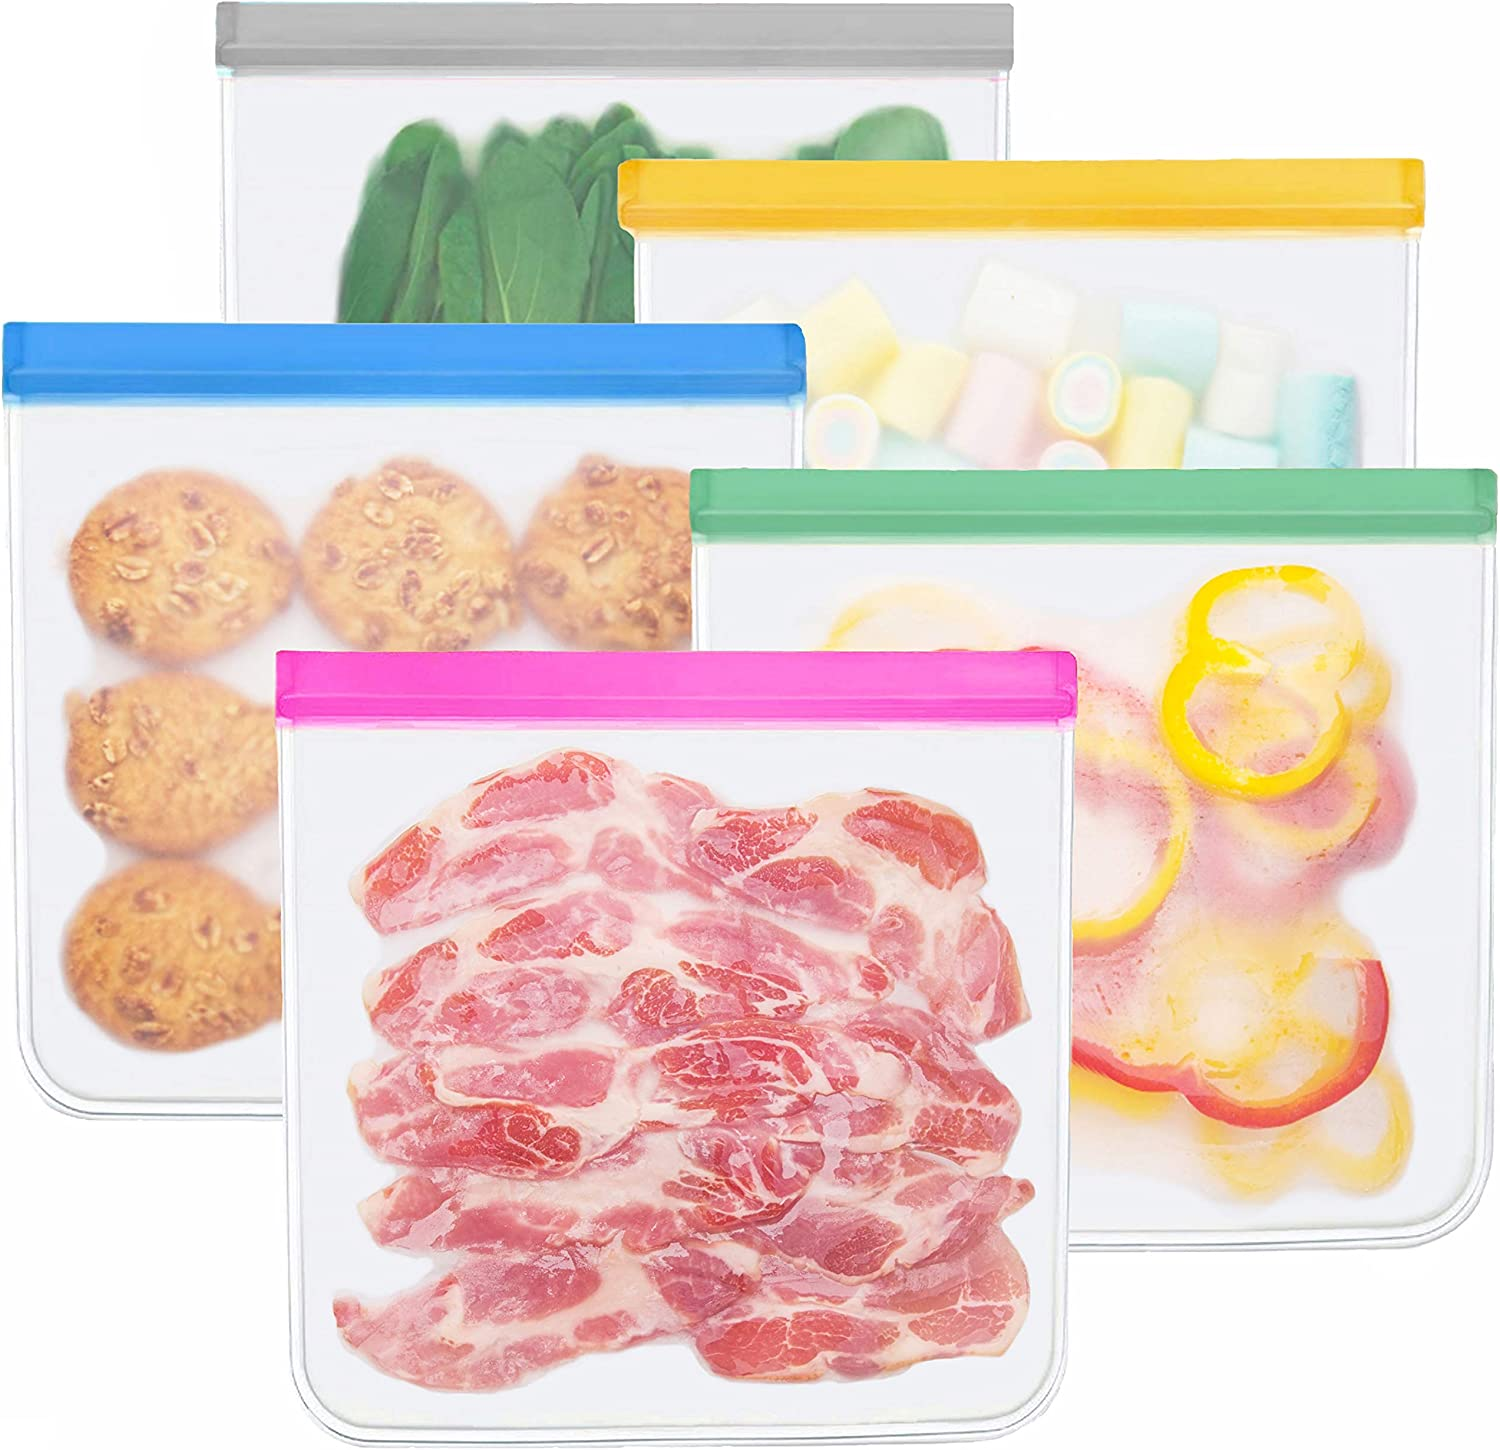 Reusable Gallon Storage Bags - 5 Pack BPA Free Food Bag Reusable Sandwich Bags Storage Bags Containers Plastic Conteiner Freezer Size Zip Snack Lunch Sous Vide for Marinate Meats Fruit